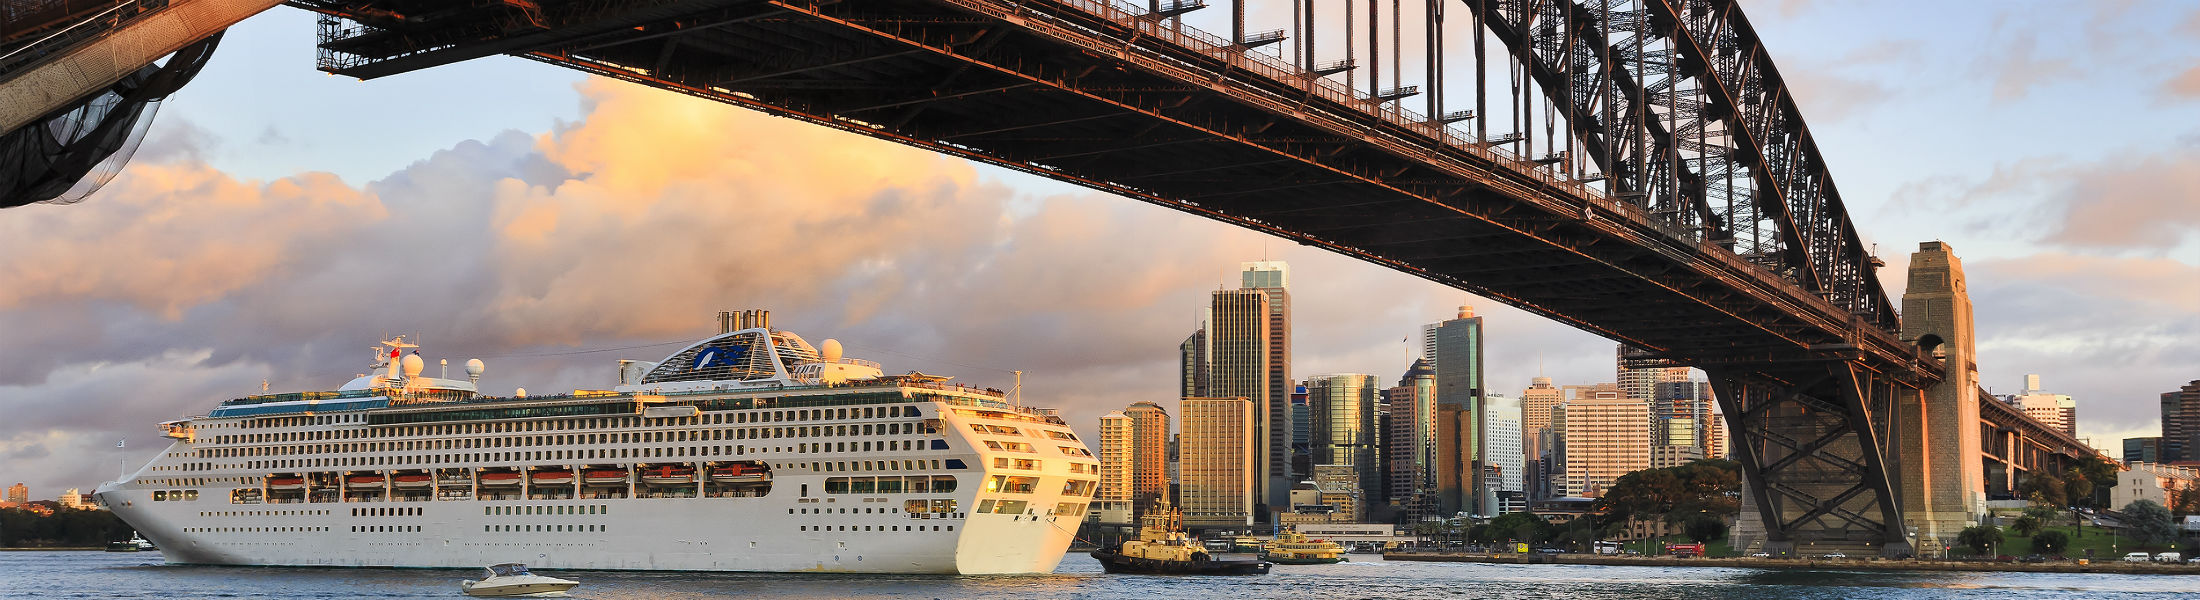 Cruise ship coming into Sydney Harbour